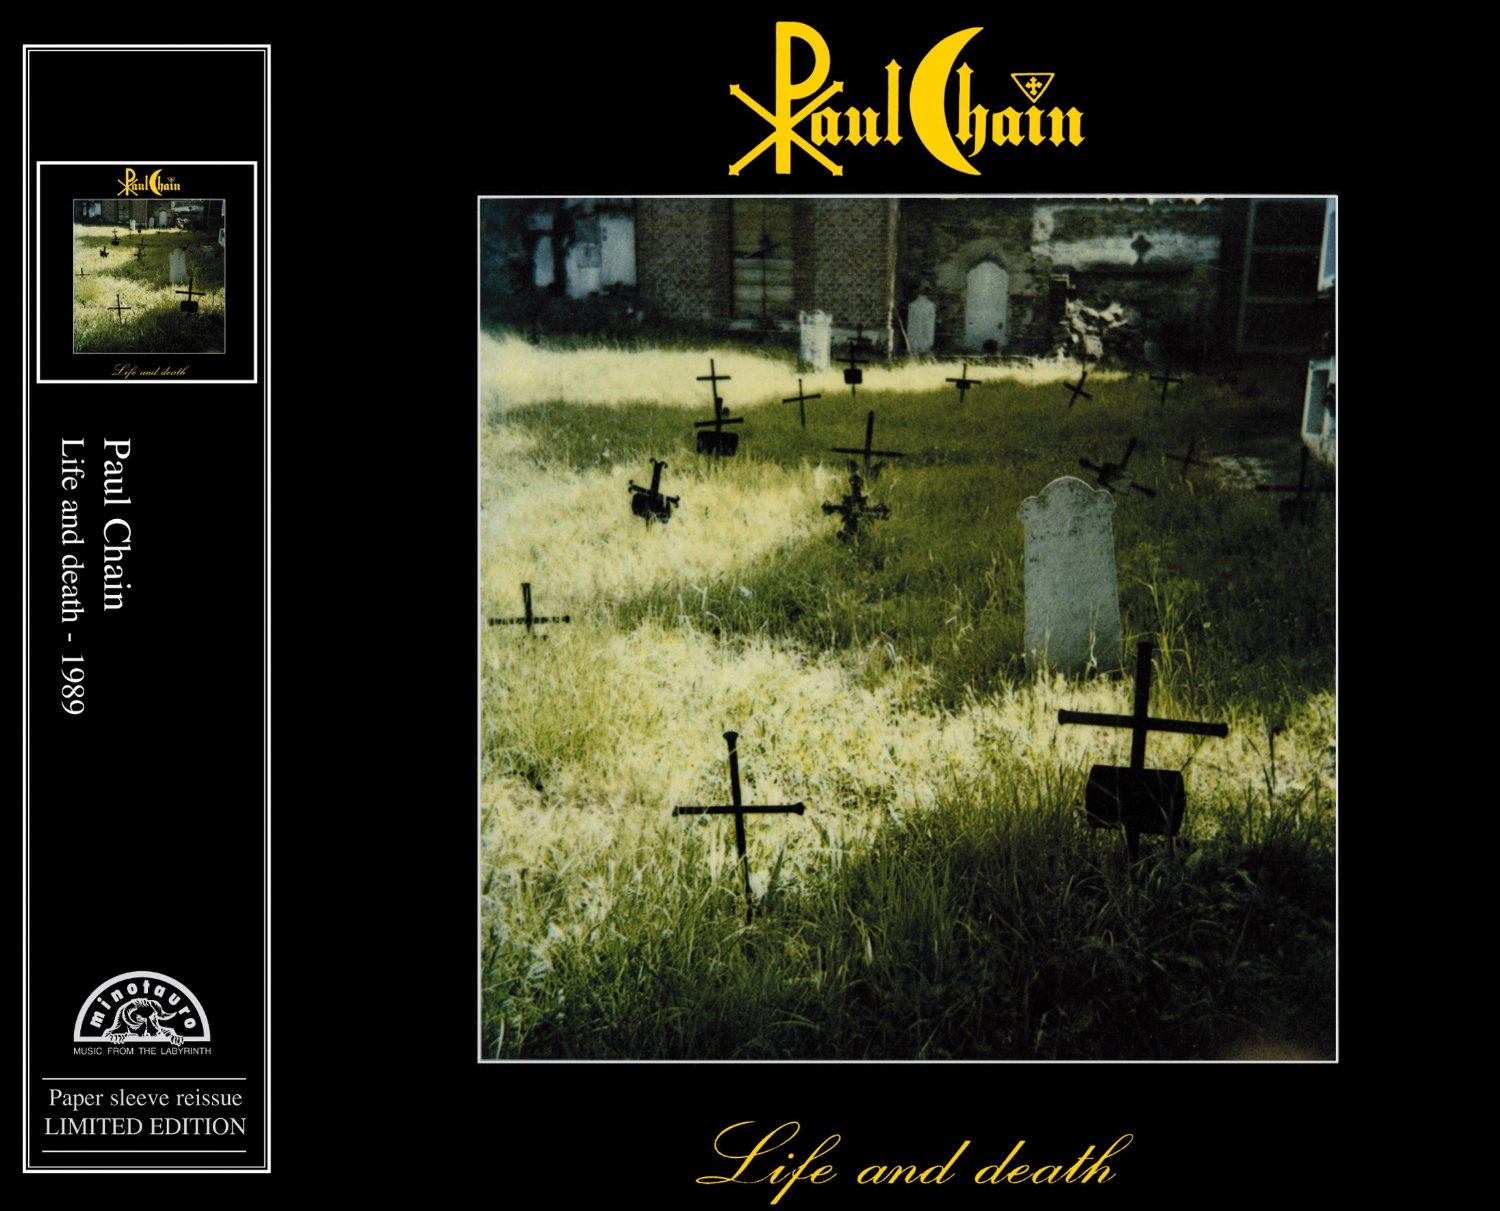 Paul Chain - Life and Death ( Jewel Case)